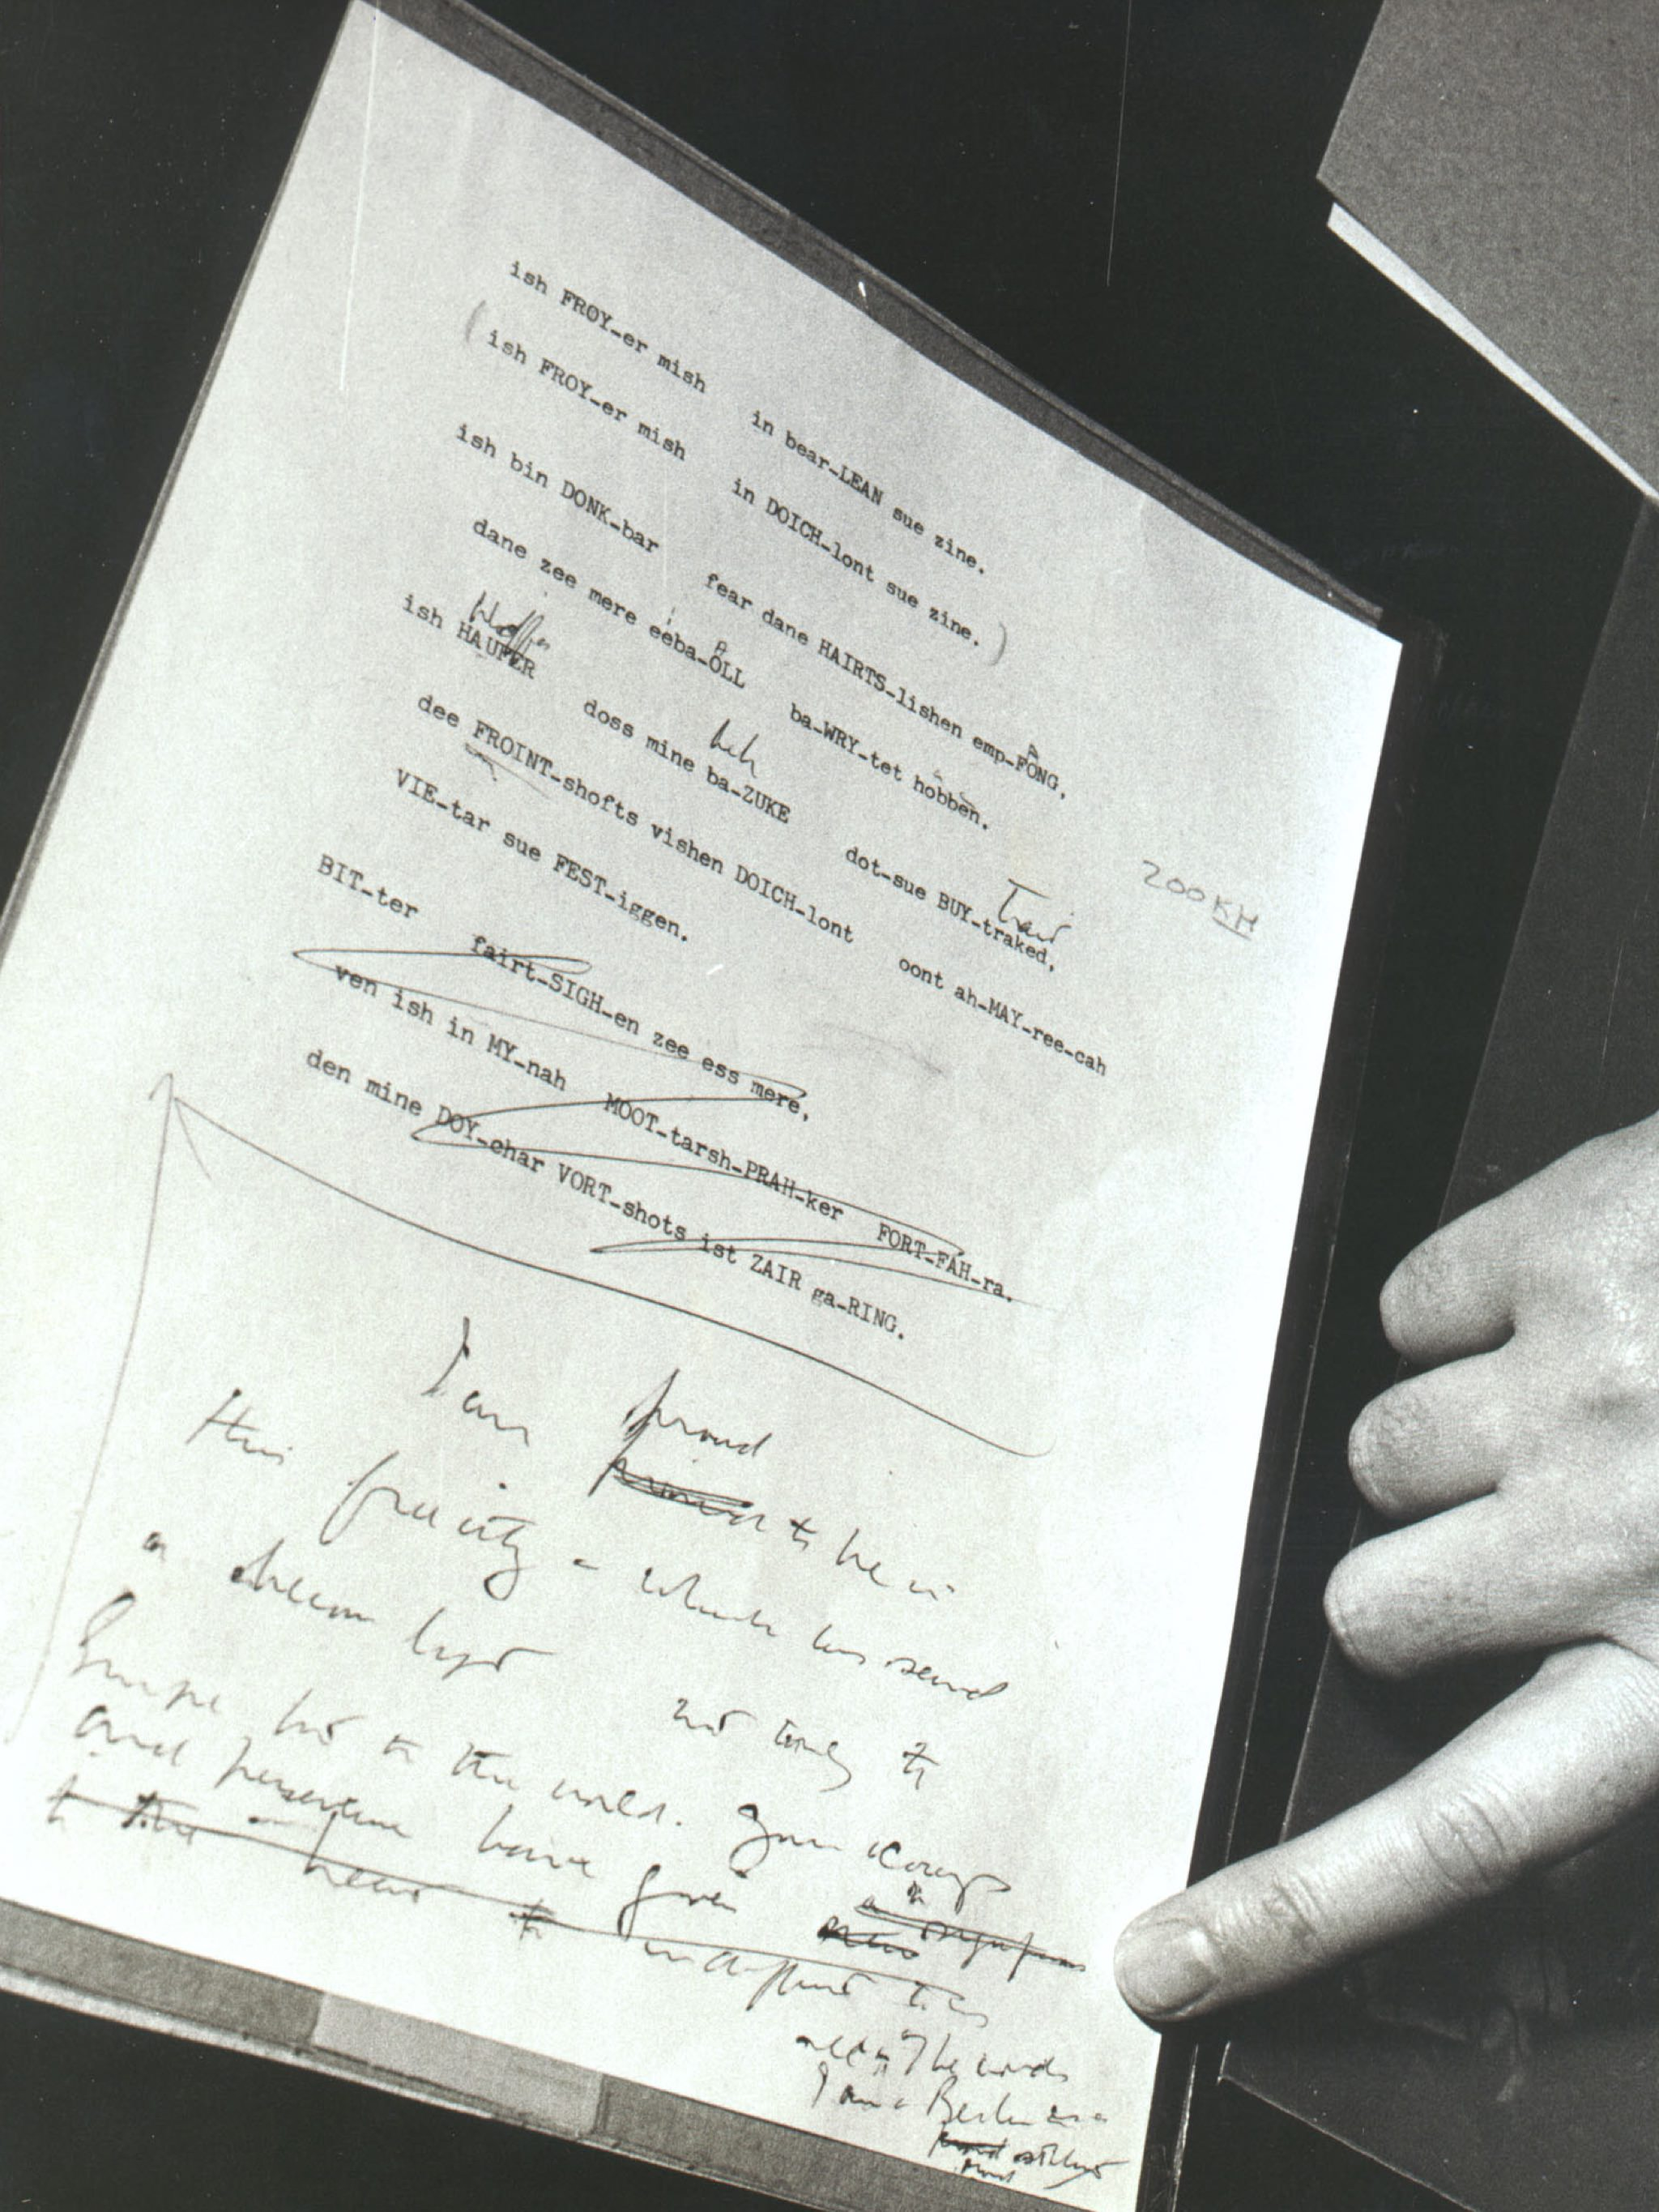 Image of modifications made to President John Kennedy's famous I Am a Berliner speech by U.S. Diplomat, Robert Lochner